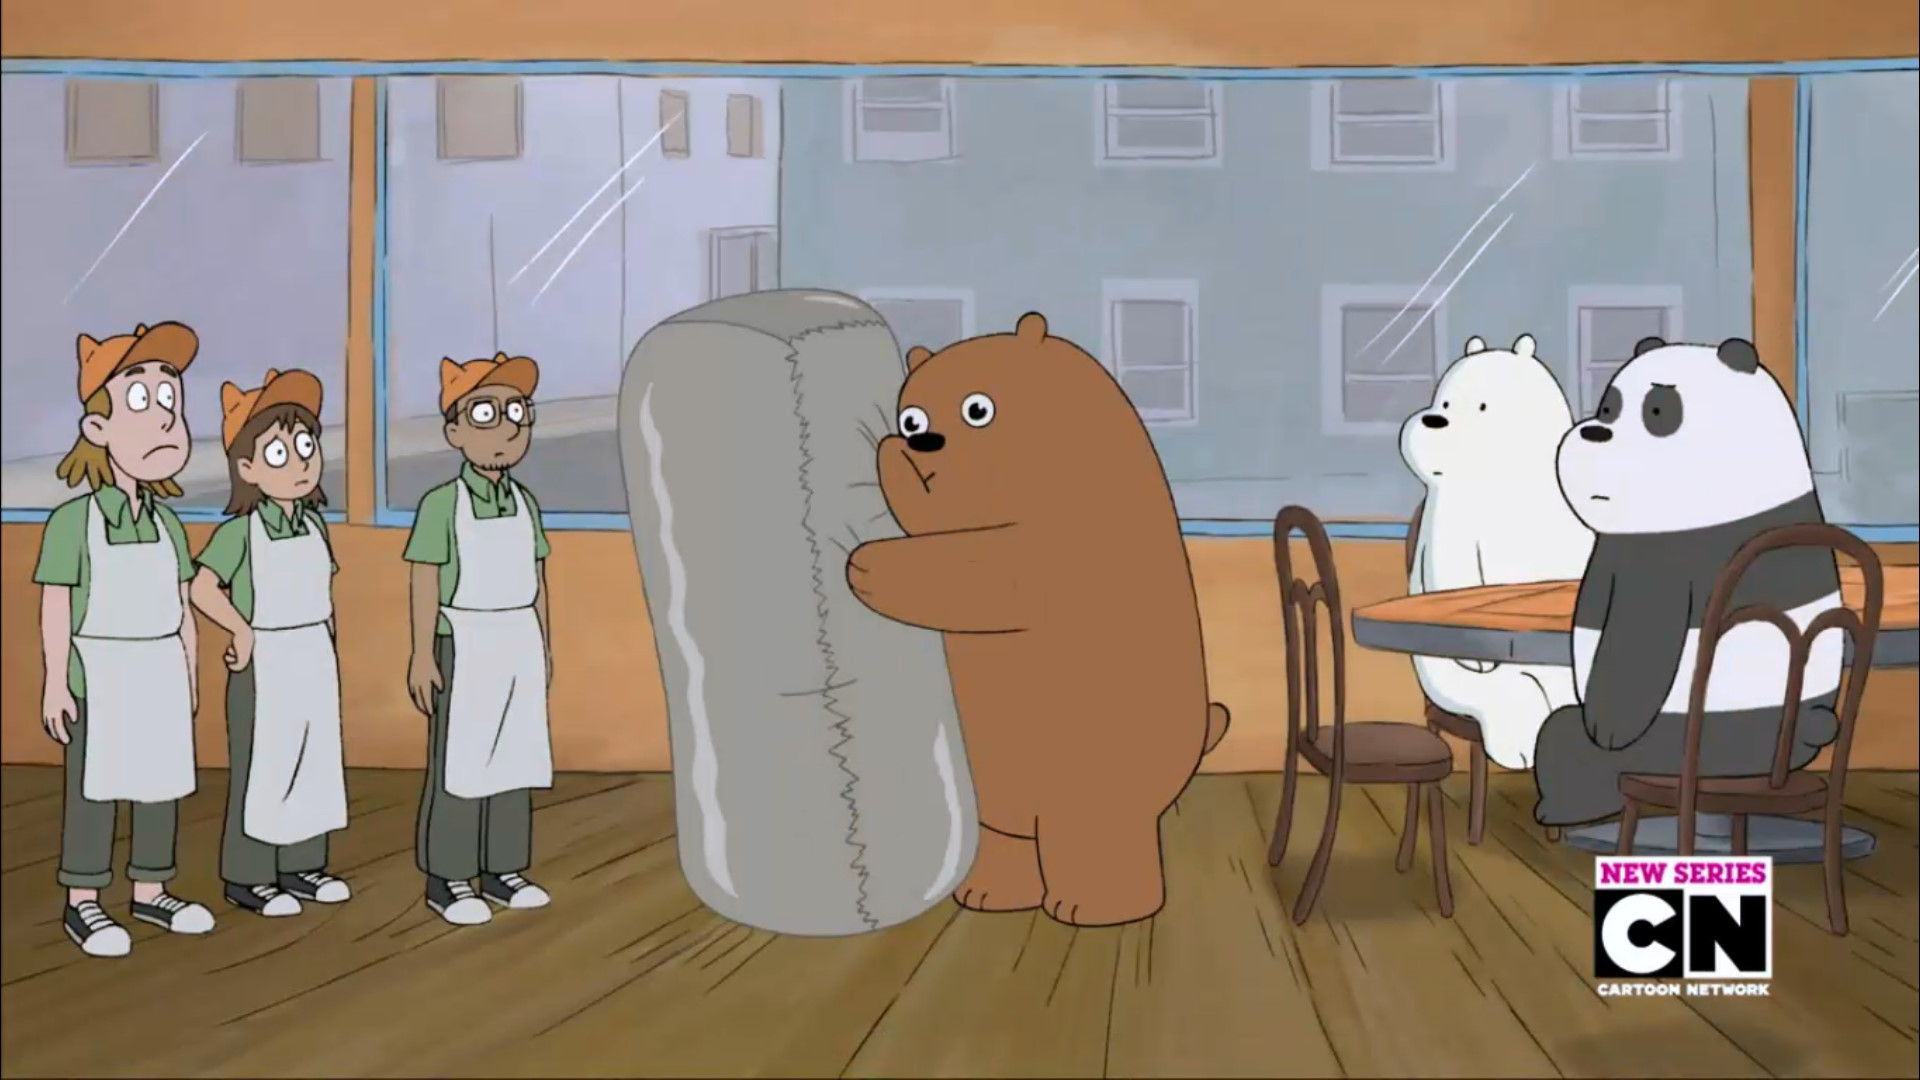 [We Bare Bears] Could someone explain this?